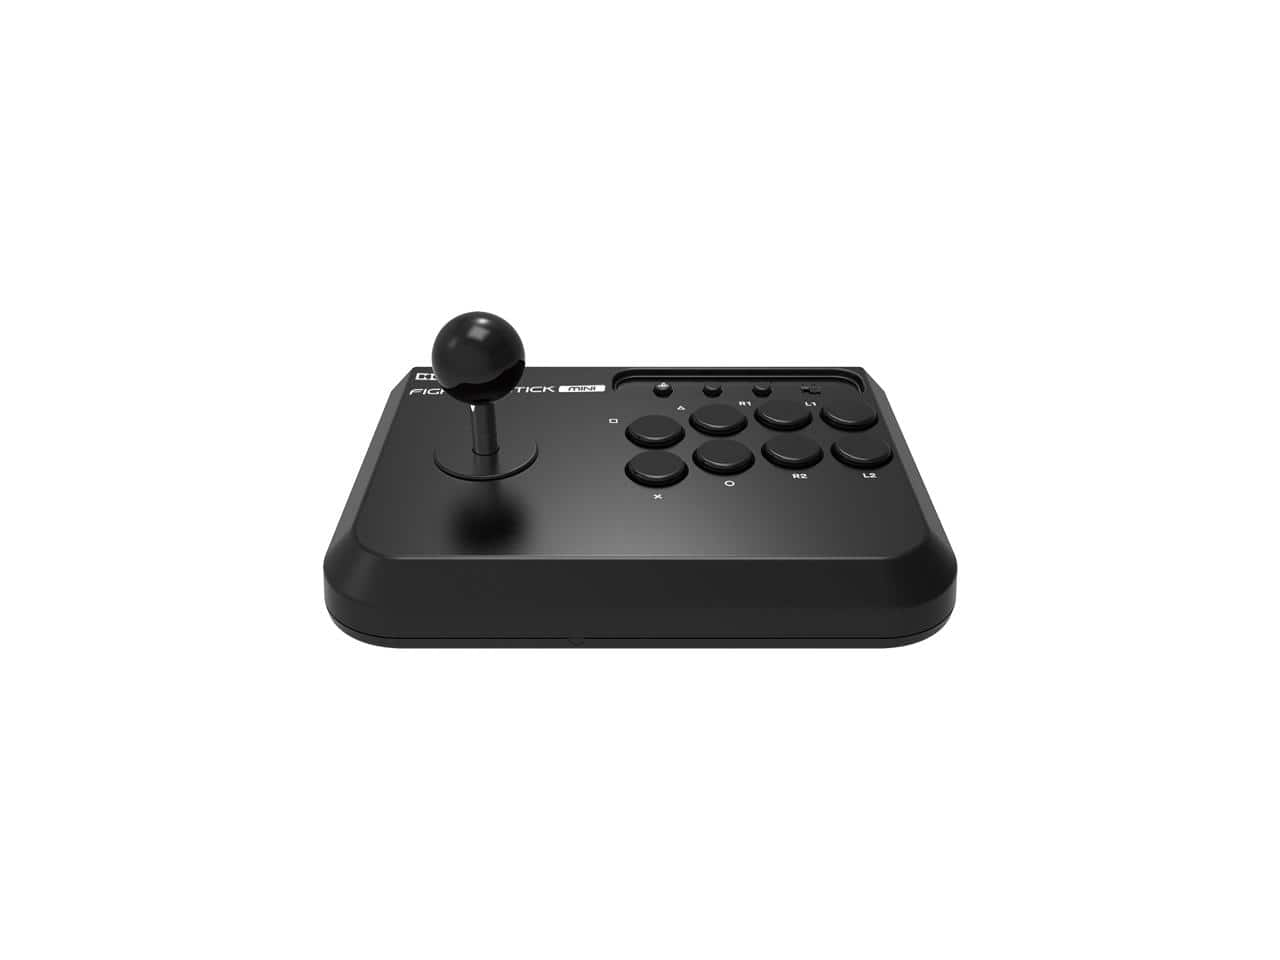 HORI Fighting Stick MINI - Playstation 4 for $24.99 $24.94